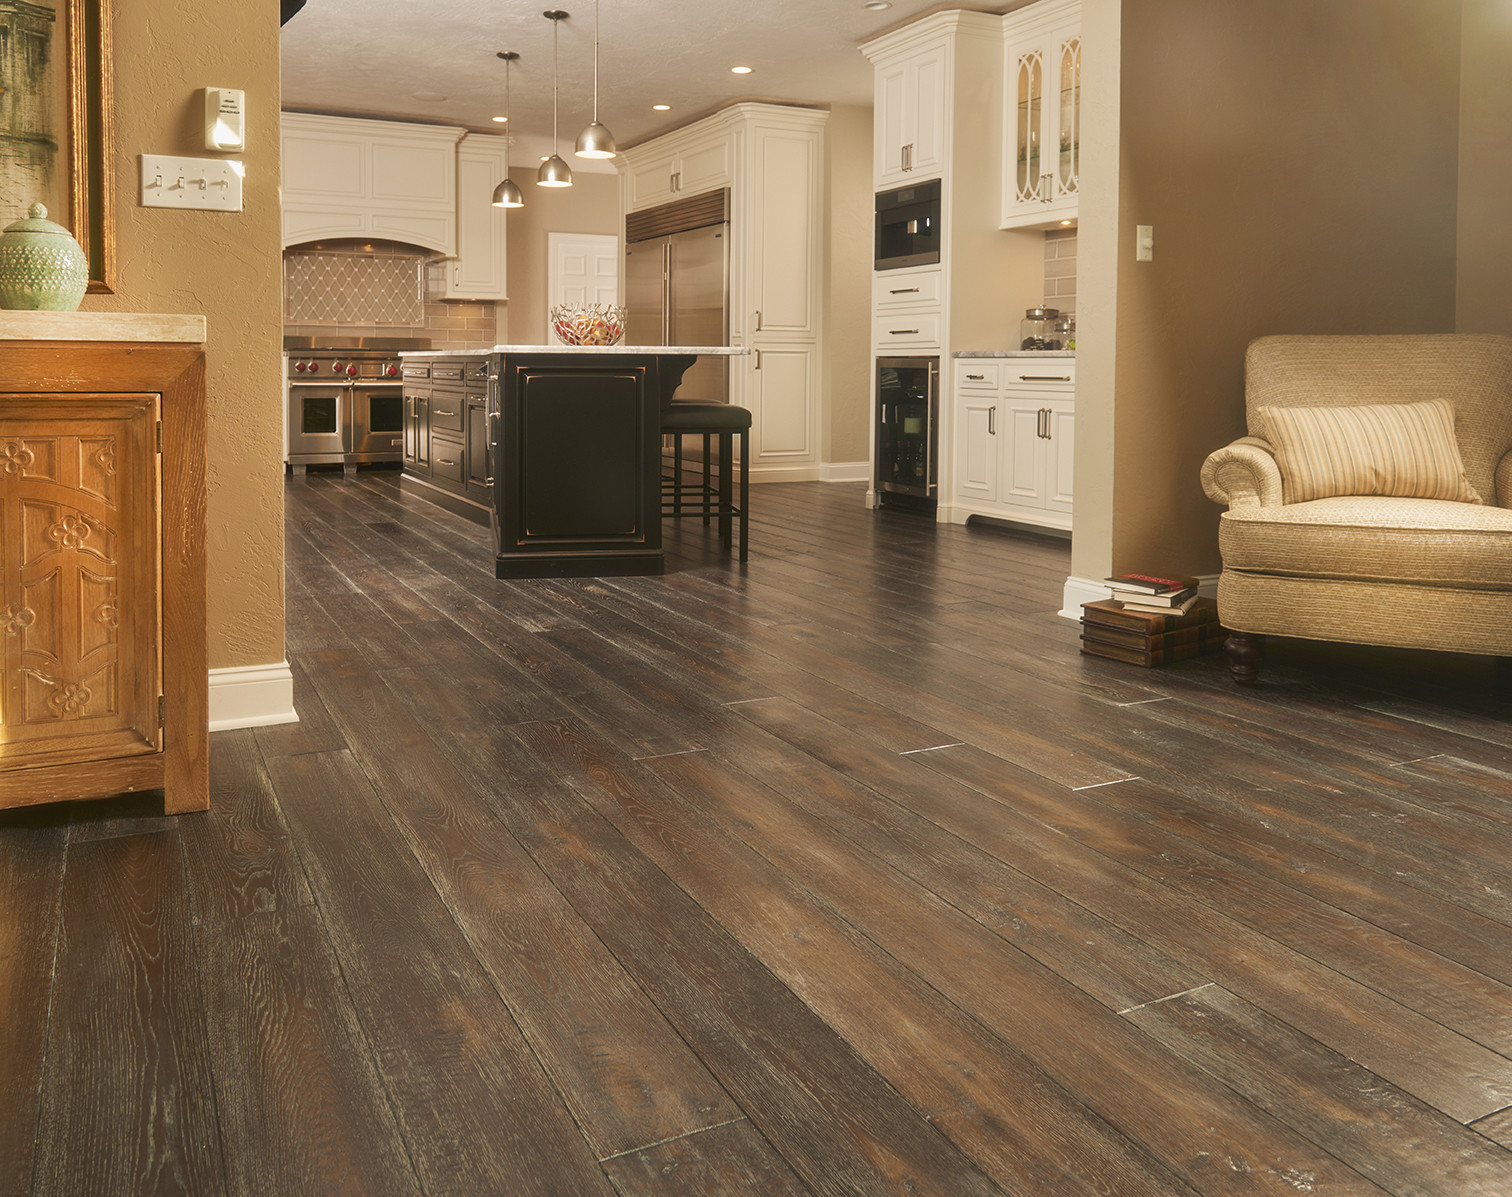 hand scraped hardwood flooring of traditional living handscraped oak laminate reviews 0060474314014 a in western pa traditional home peachey hardwood flooring